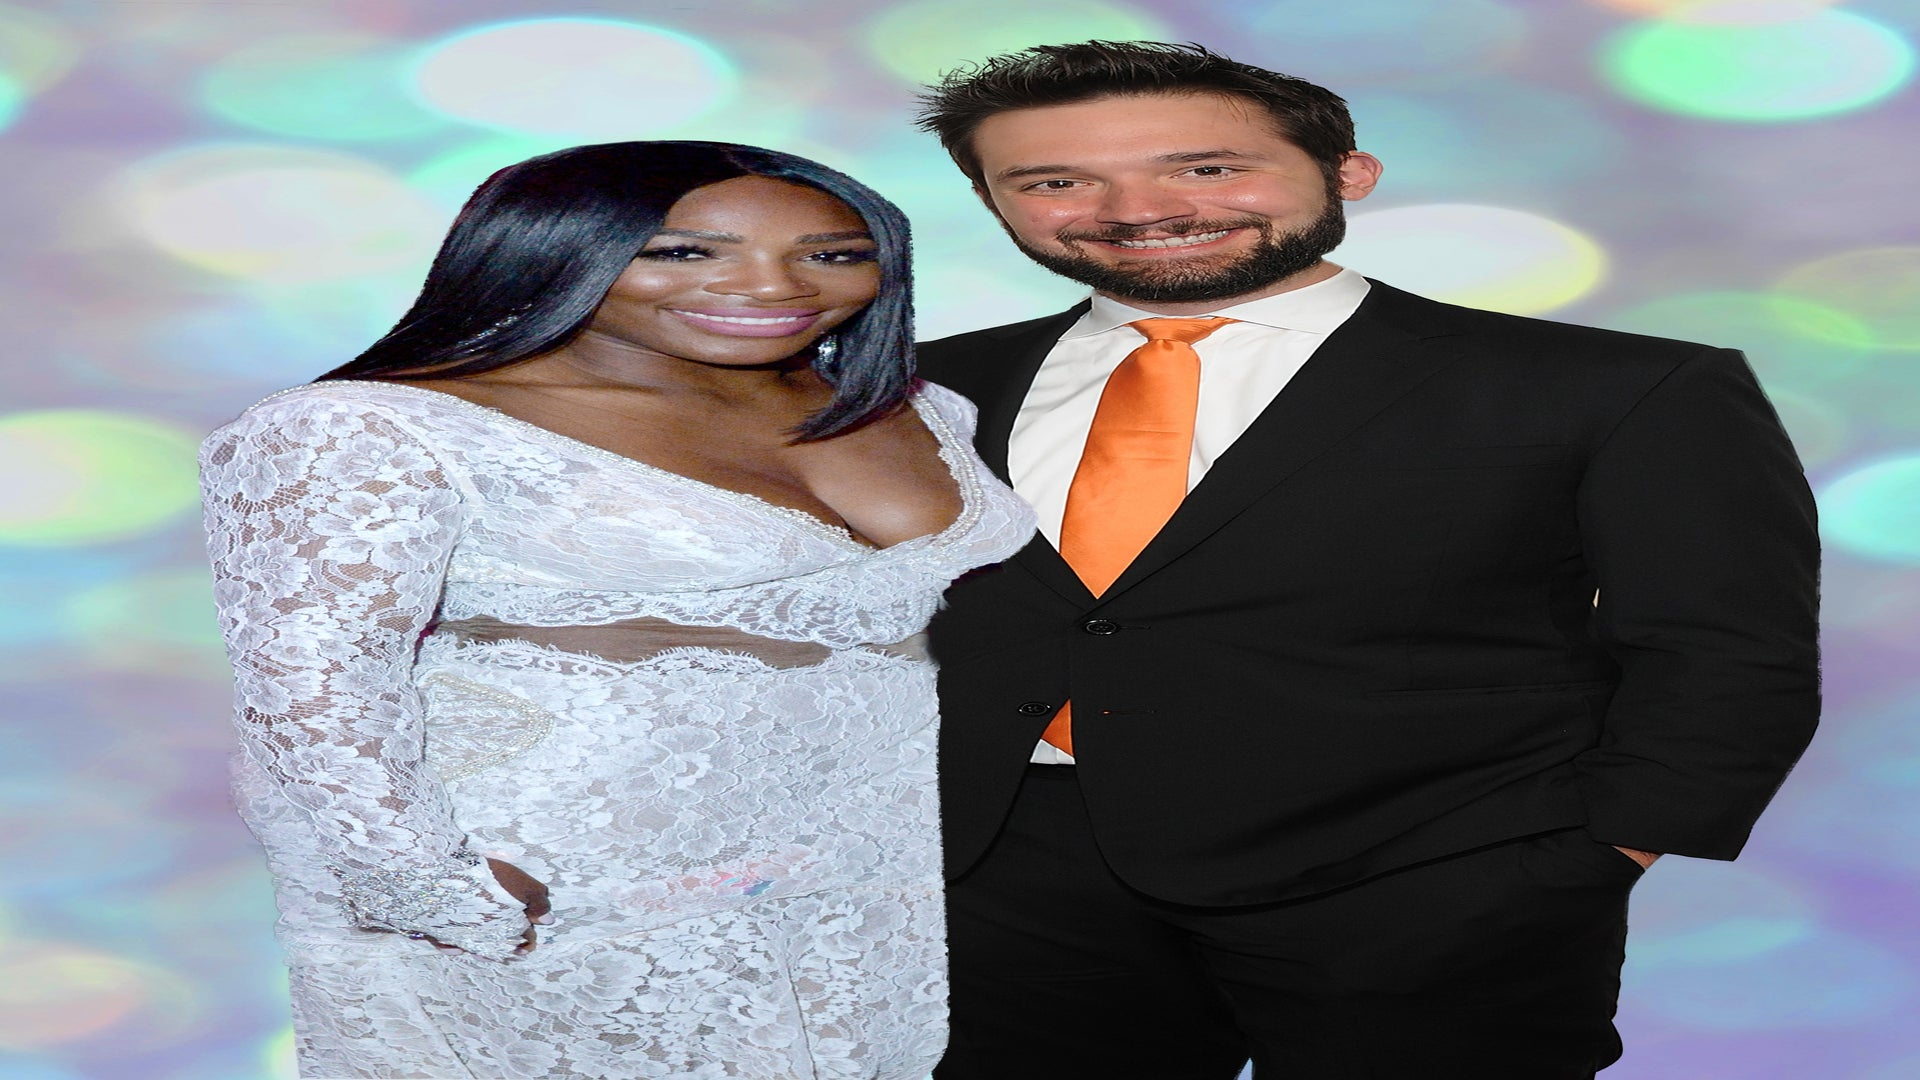 6 Things To Know About Serena Williams' New Fiancé Alexis Ohanian